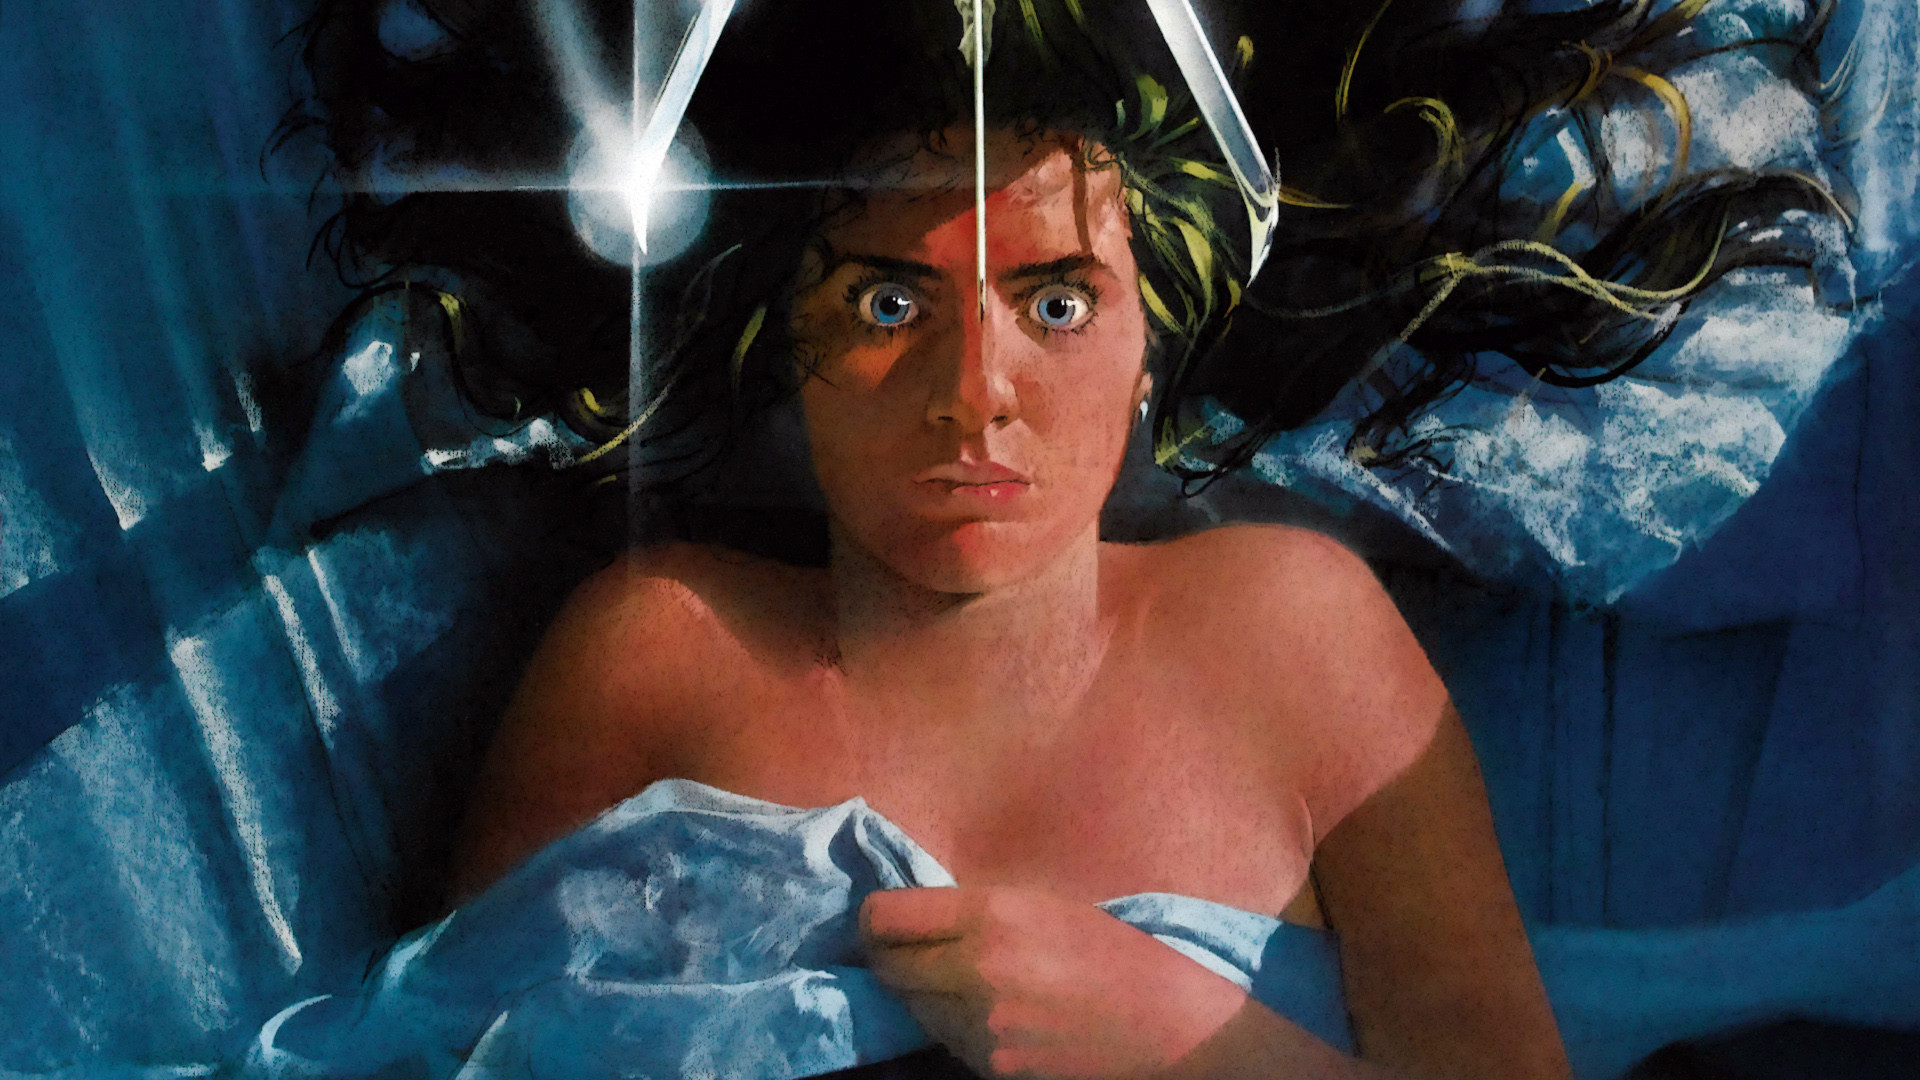 Can Nude nightmare on elm street pics join